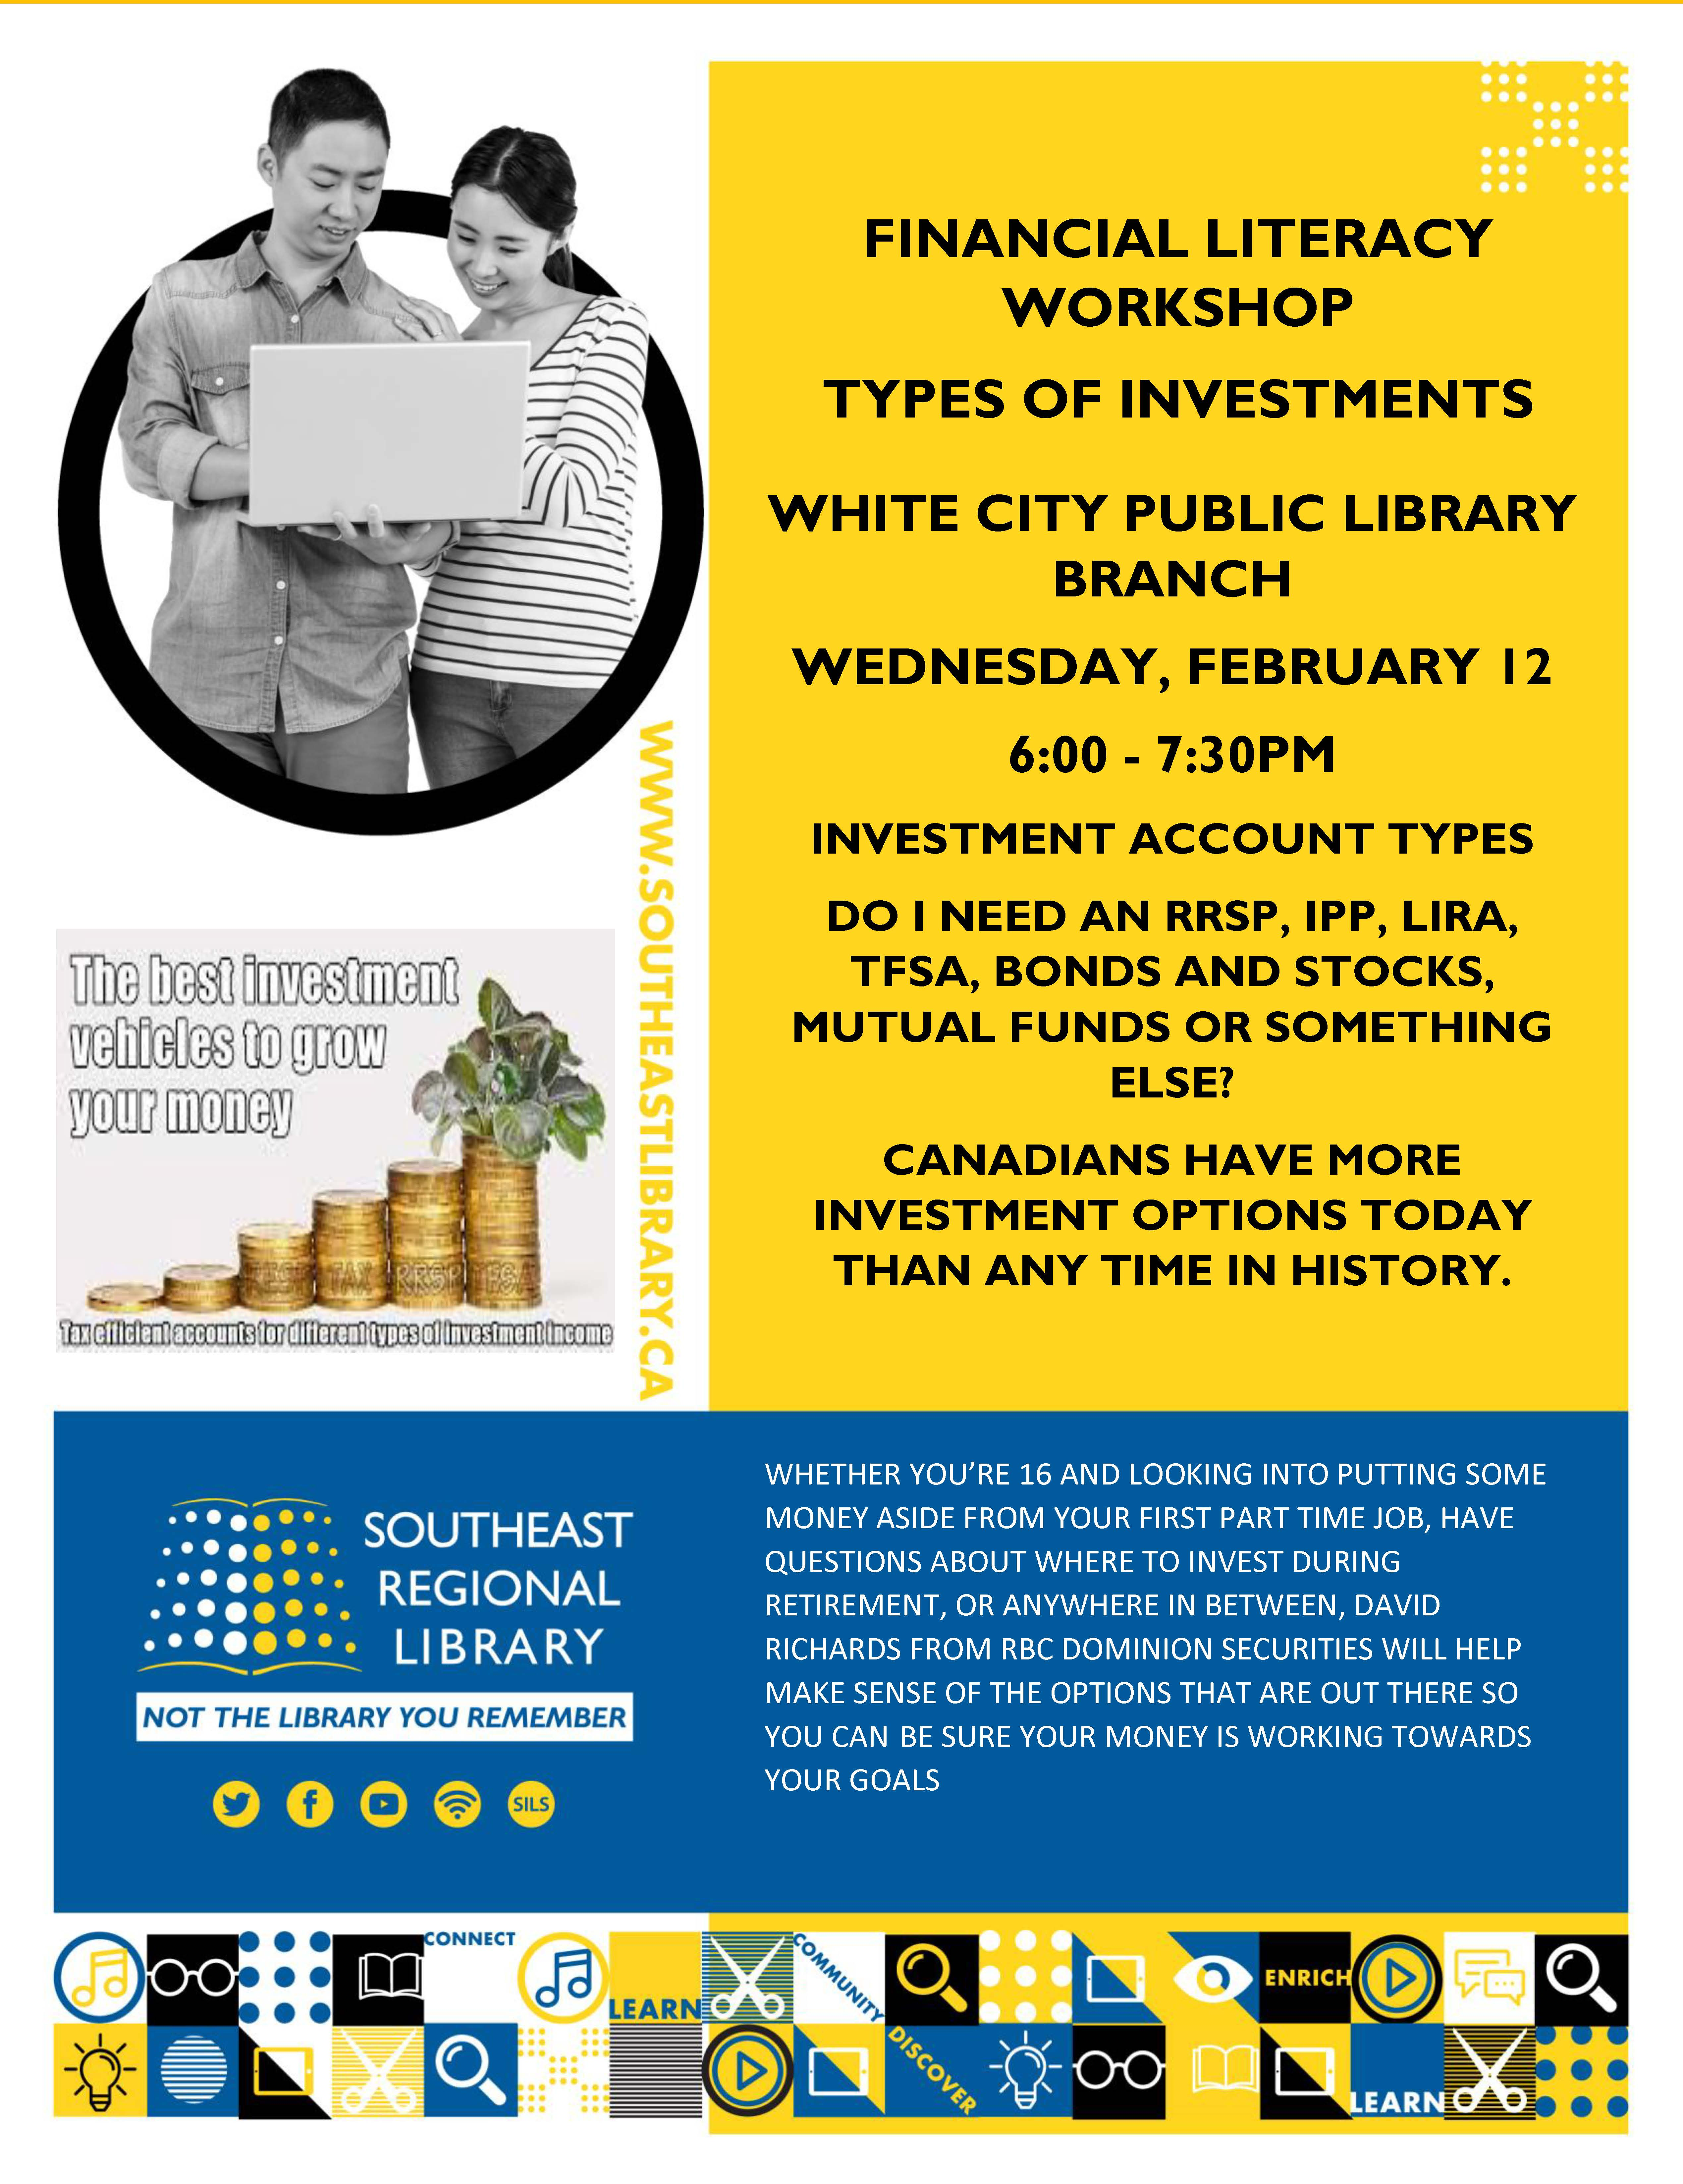 Financial Literacy Workshop - Types of Investments